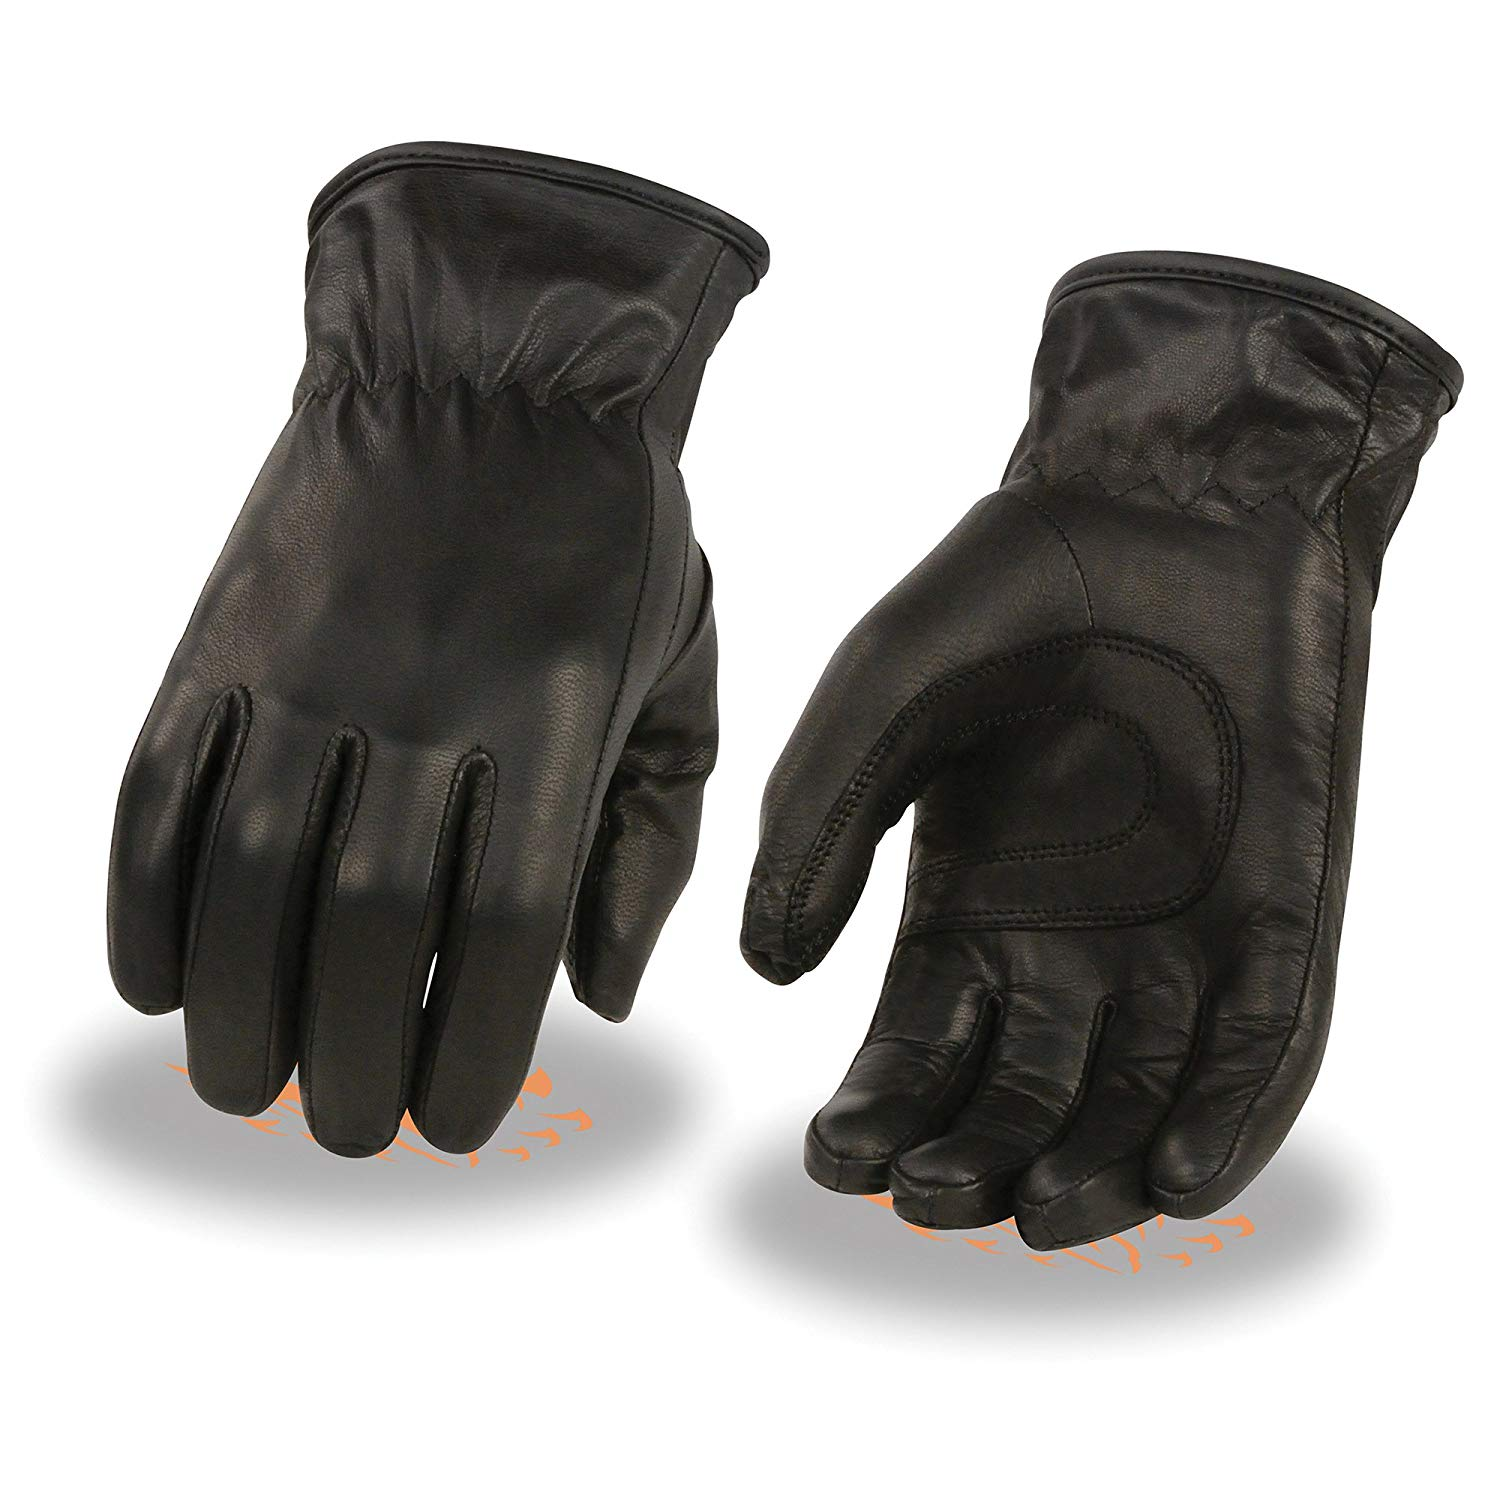 9ef80a42f Get Quotations · Ladies Premium Leather Thermal Lined Glove, w/Cinch Wrist  (Large)